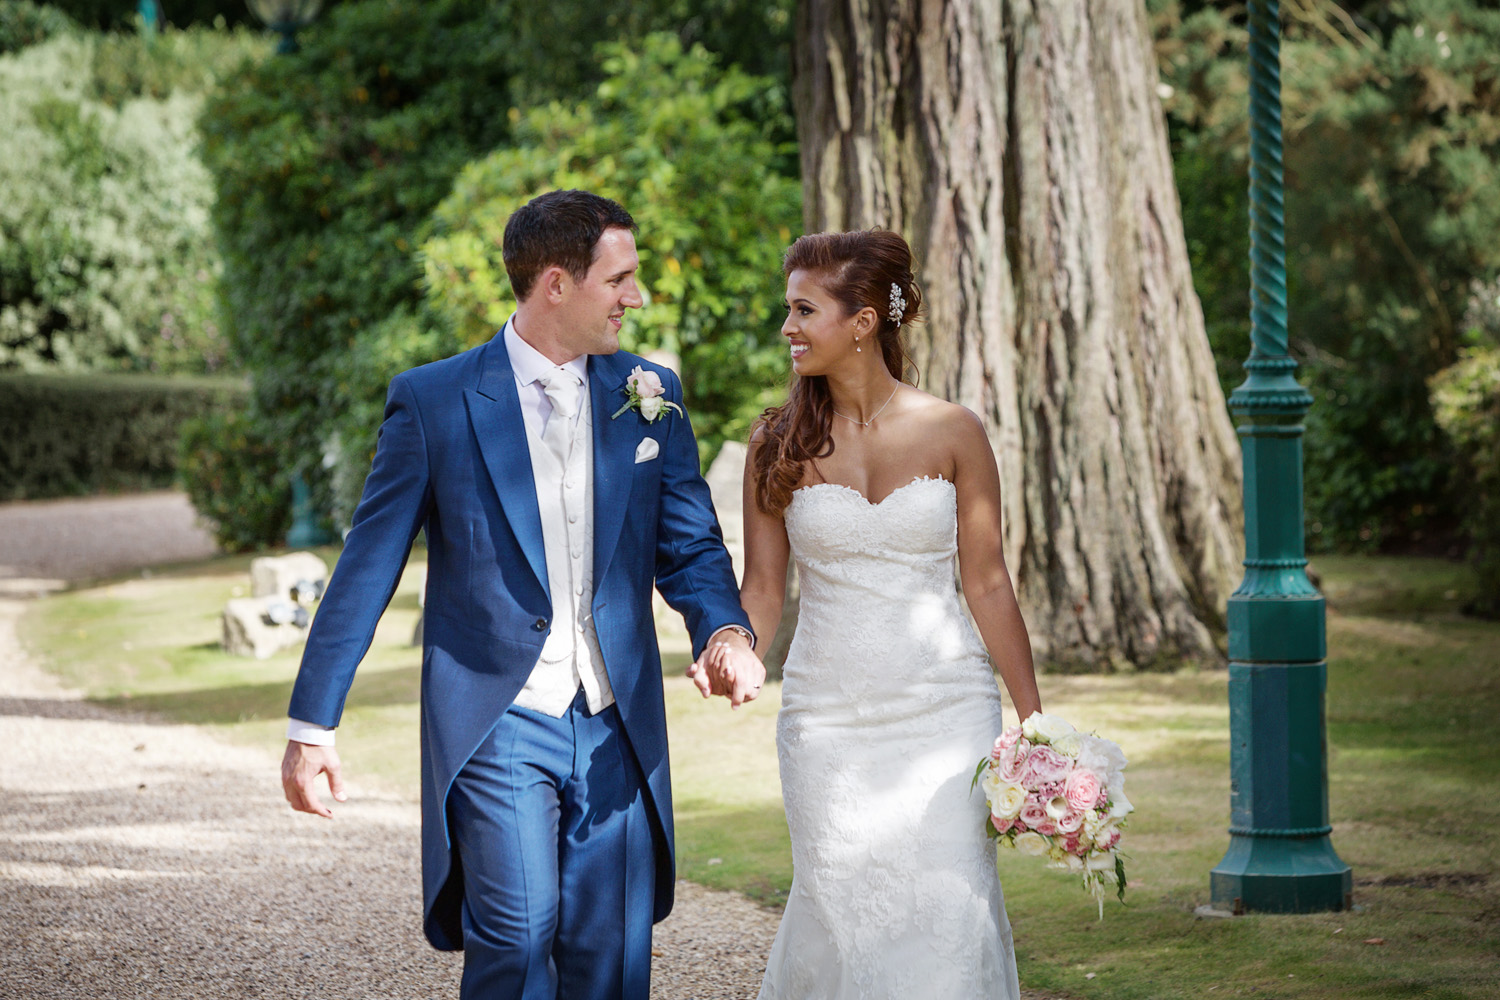 The_Vineyard_Hotel_Wedding_Photographer_Newbury_Berkshire_088.jpg